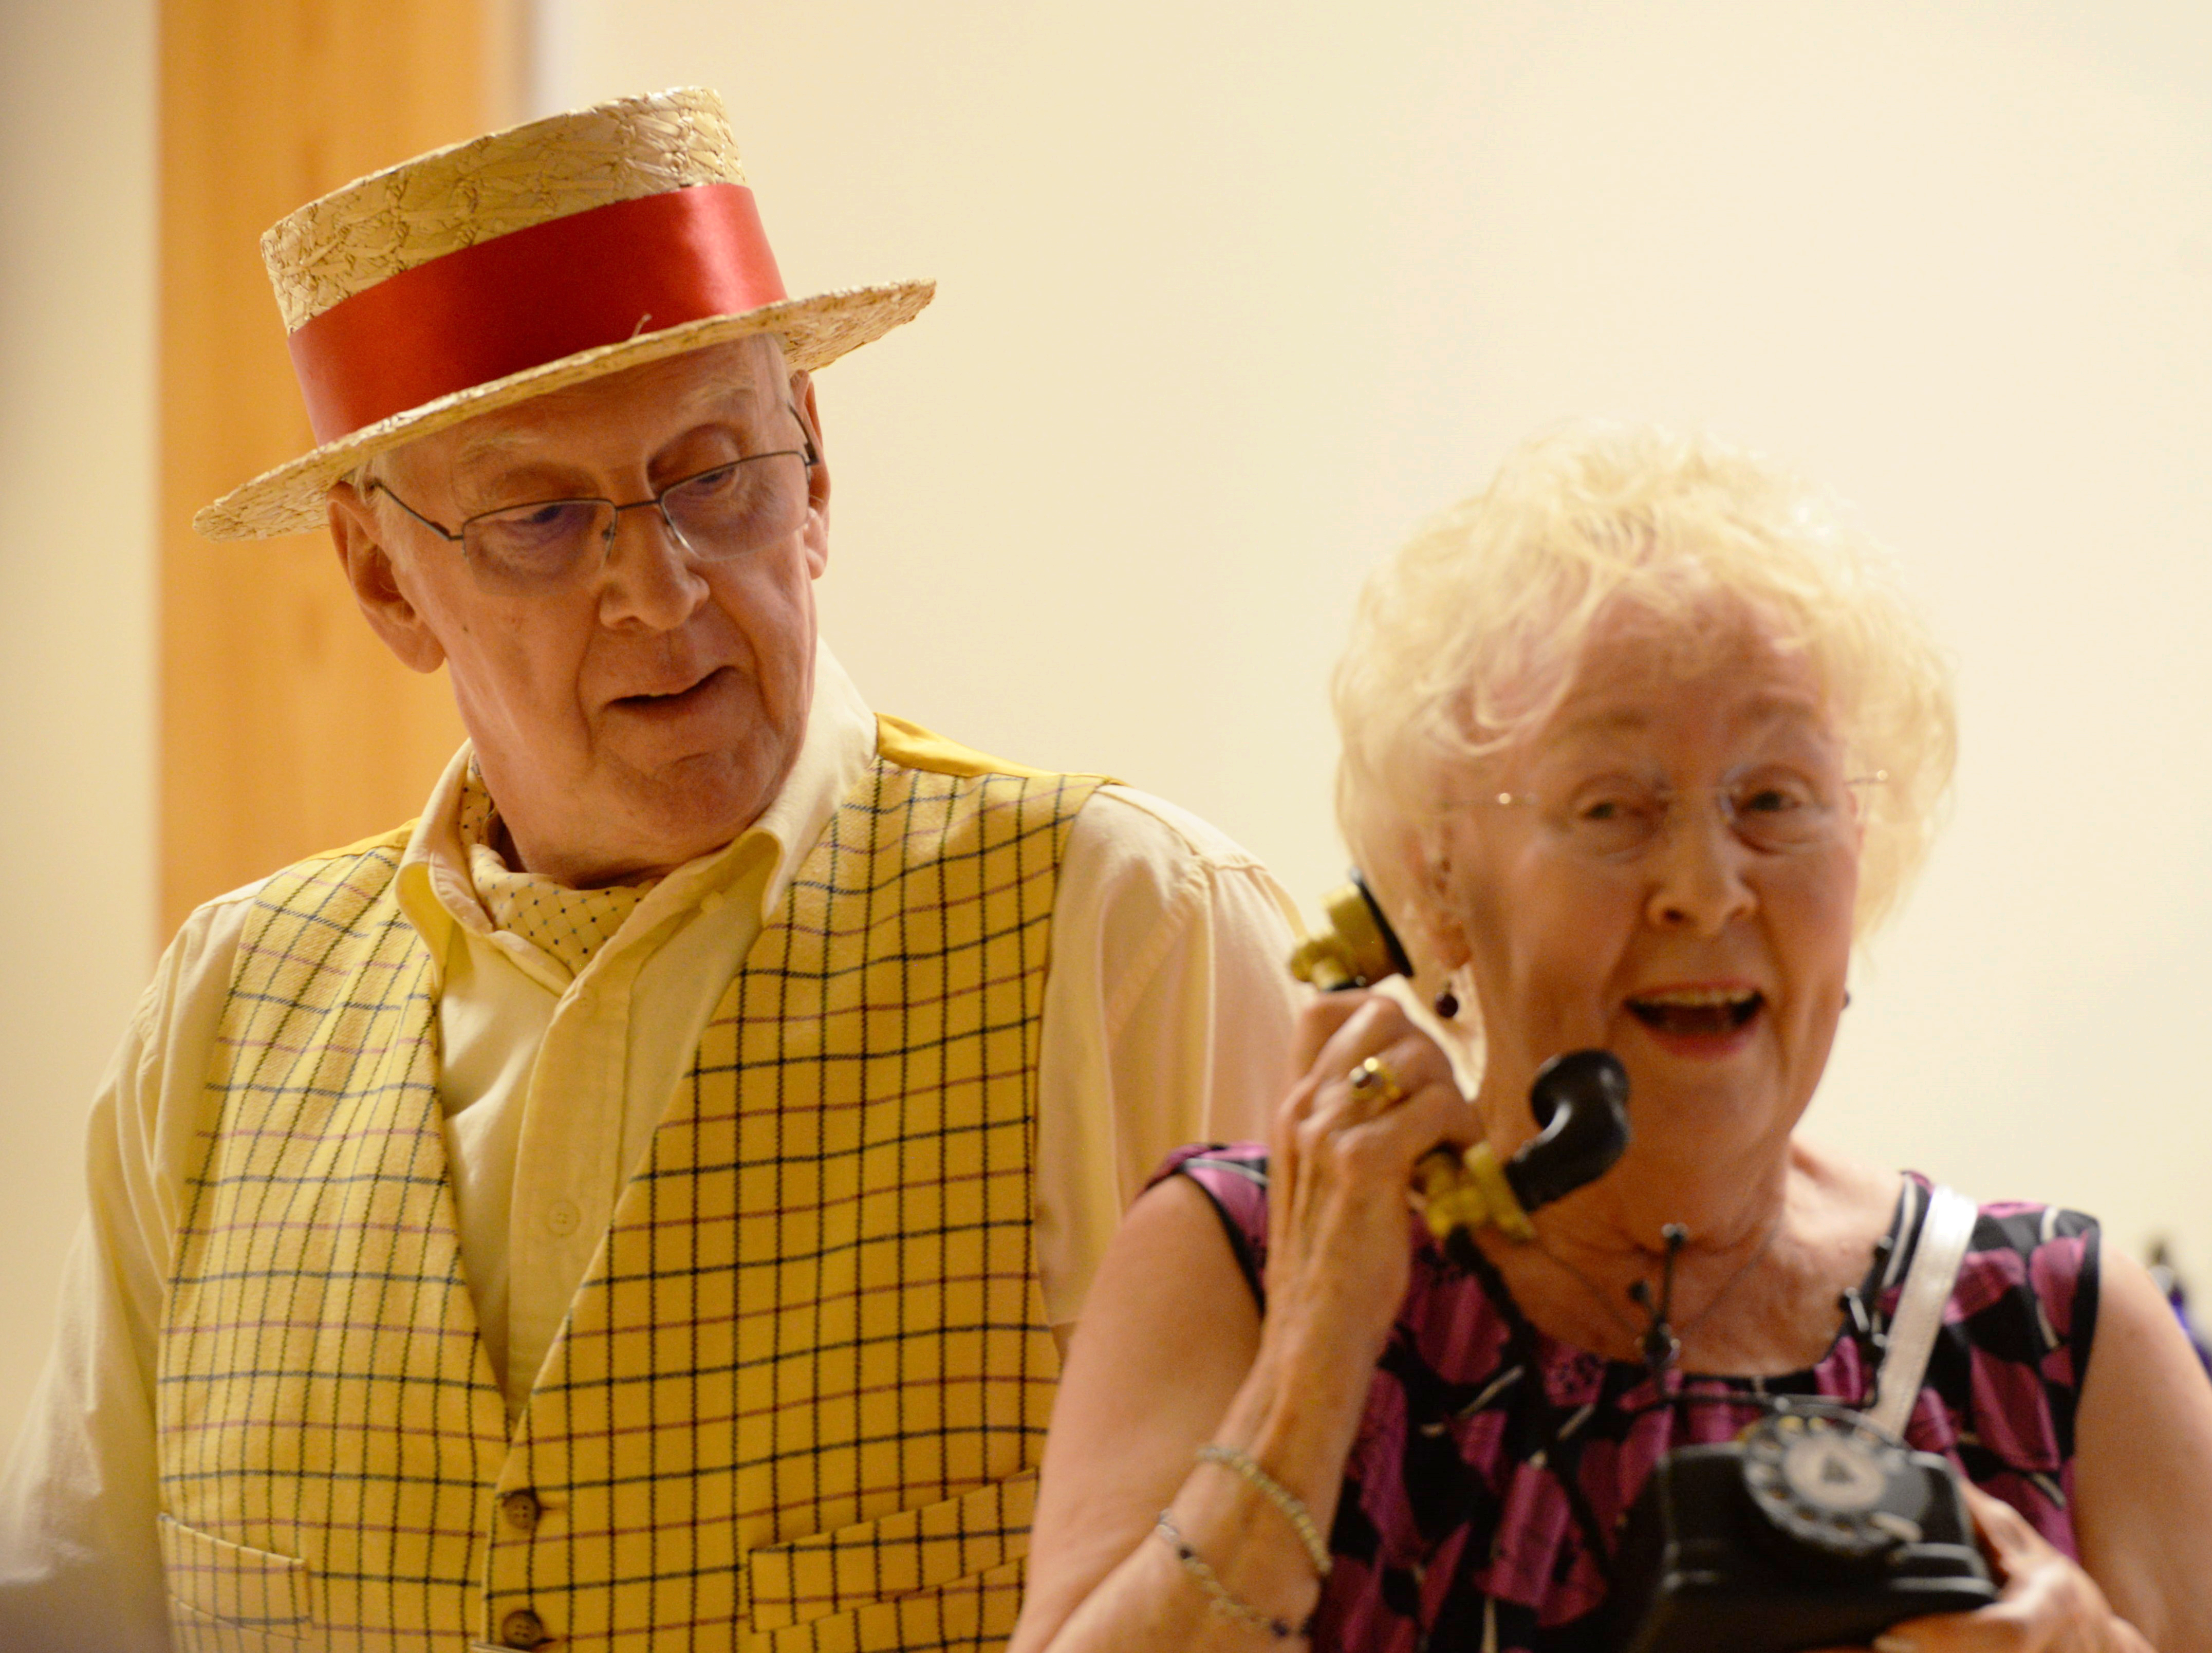 """REVIEW: Devizes Musical Theatre's """"A Gallery Of Rogues"""" @ Lavington Community Centre –Saturday 11th September 2021"""